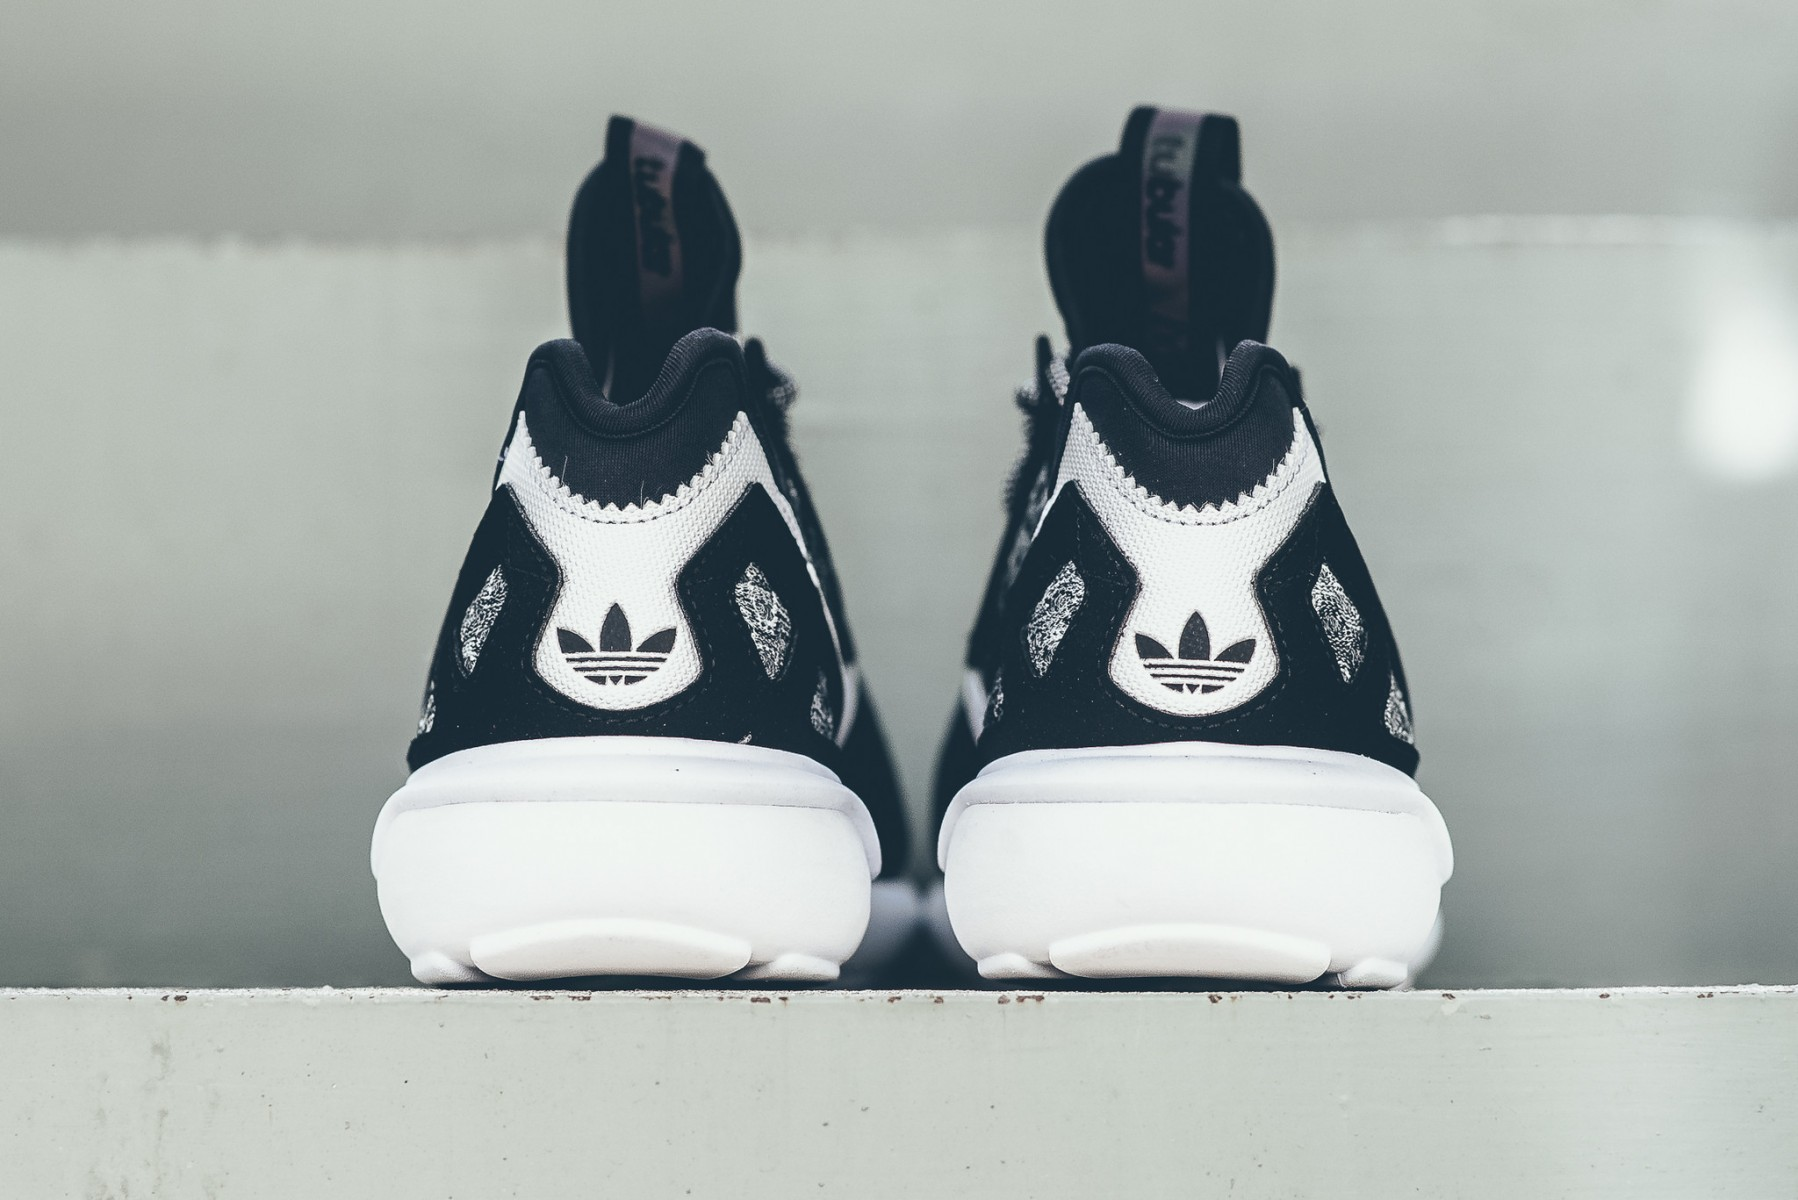 adidas-originals-wool-tubular-runner-black-white-04-1798x1200